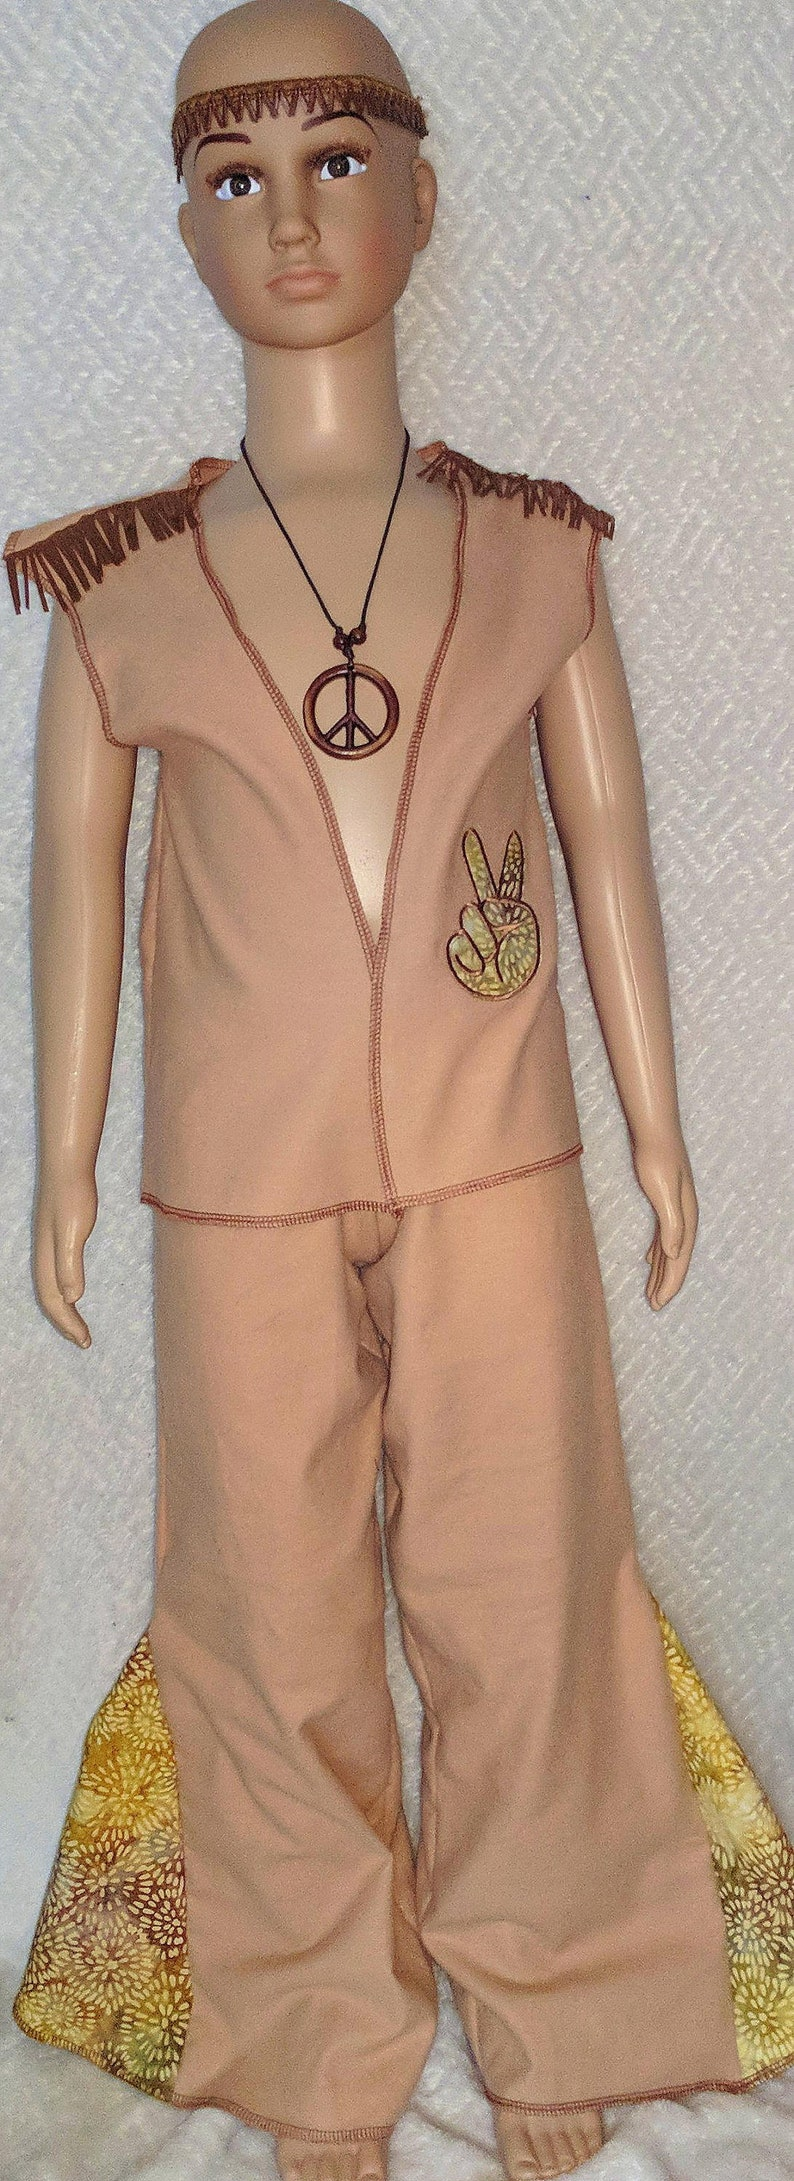 boys size medium child childrens 8-10 years 4 four piece full size 1970s theme party event boho hippie costume costumes